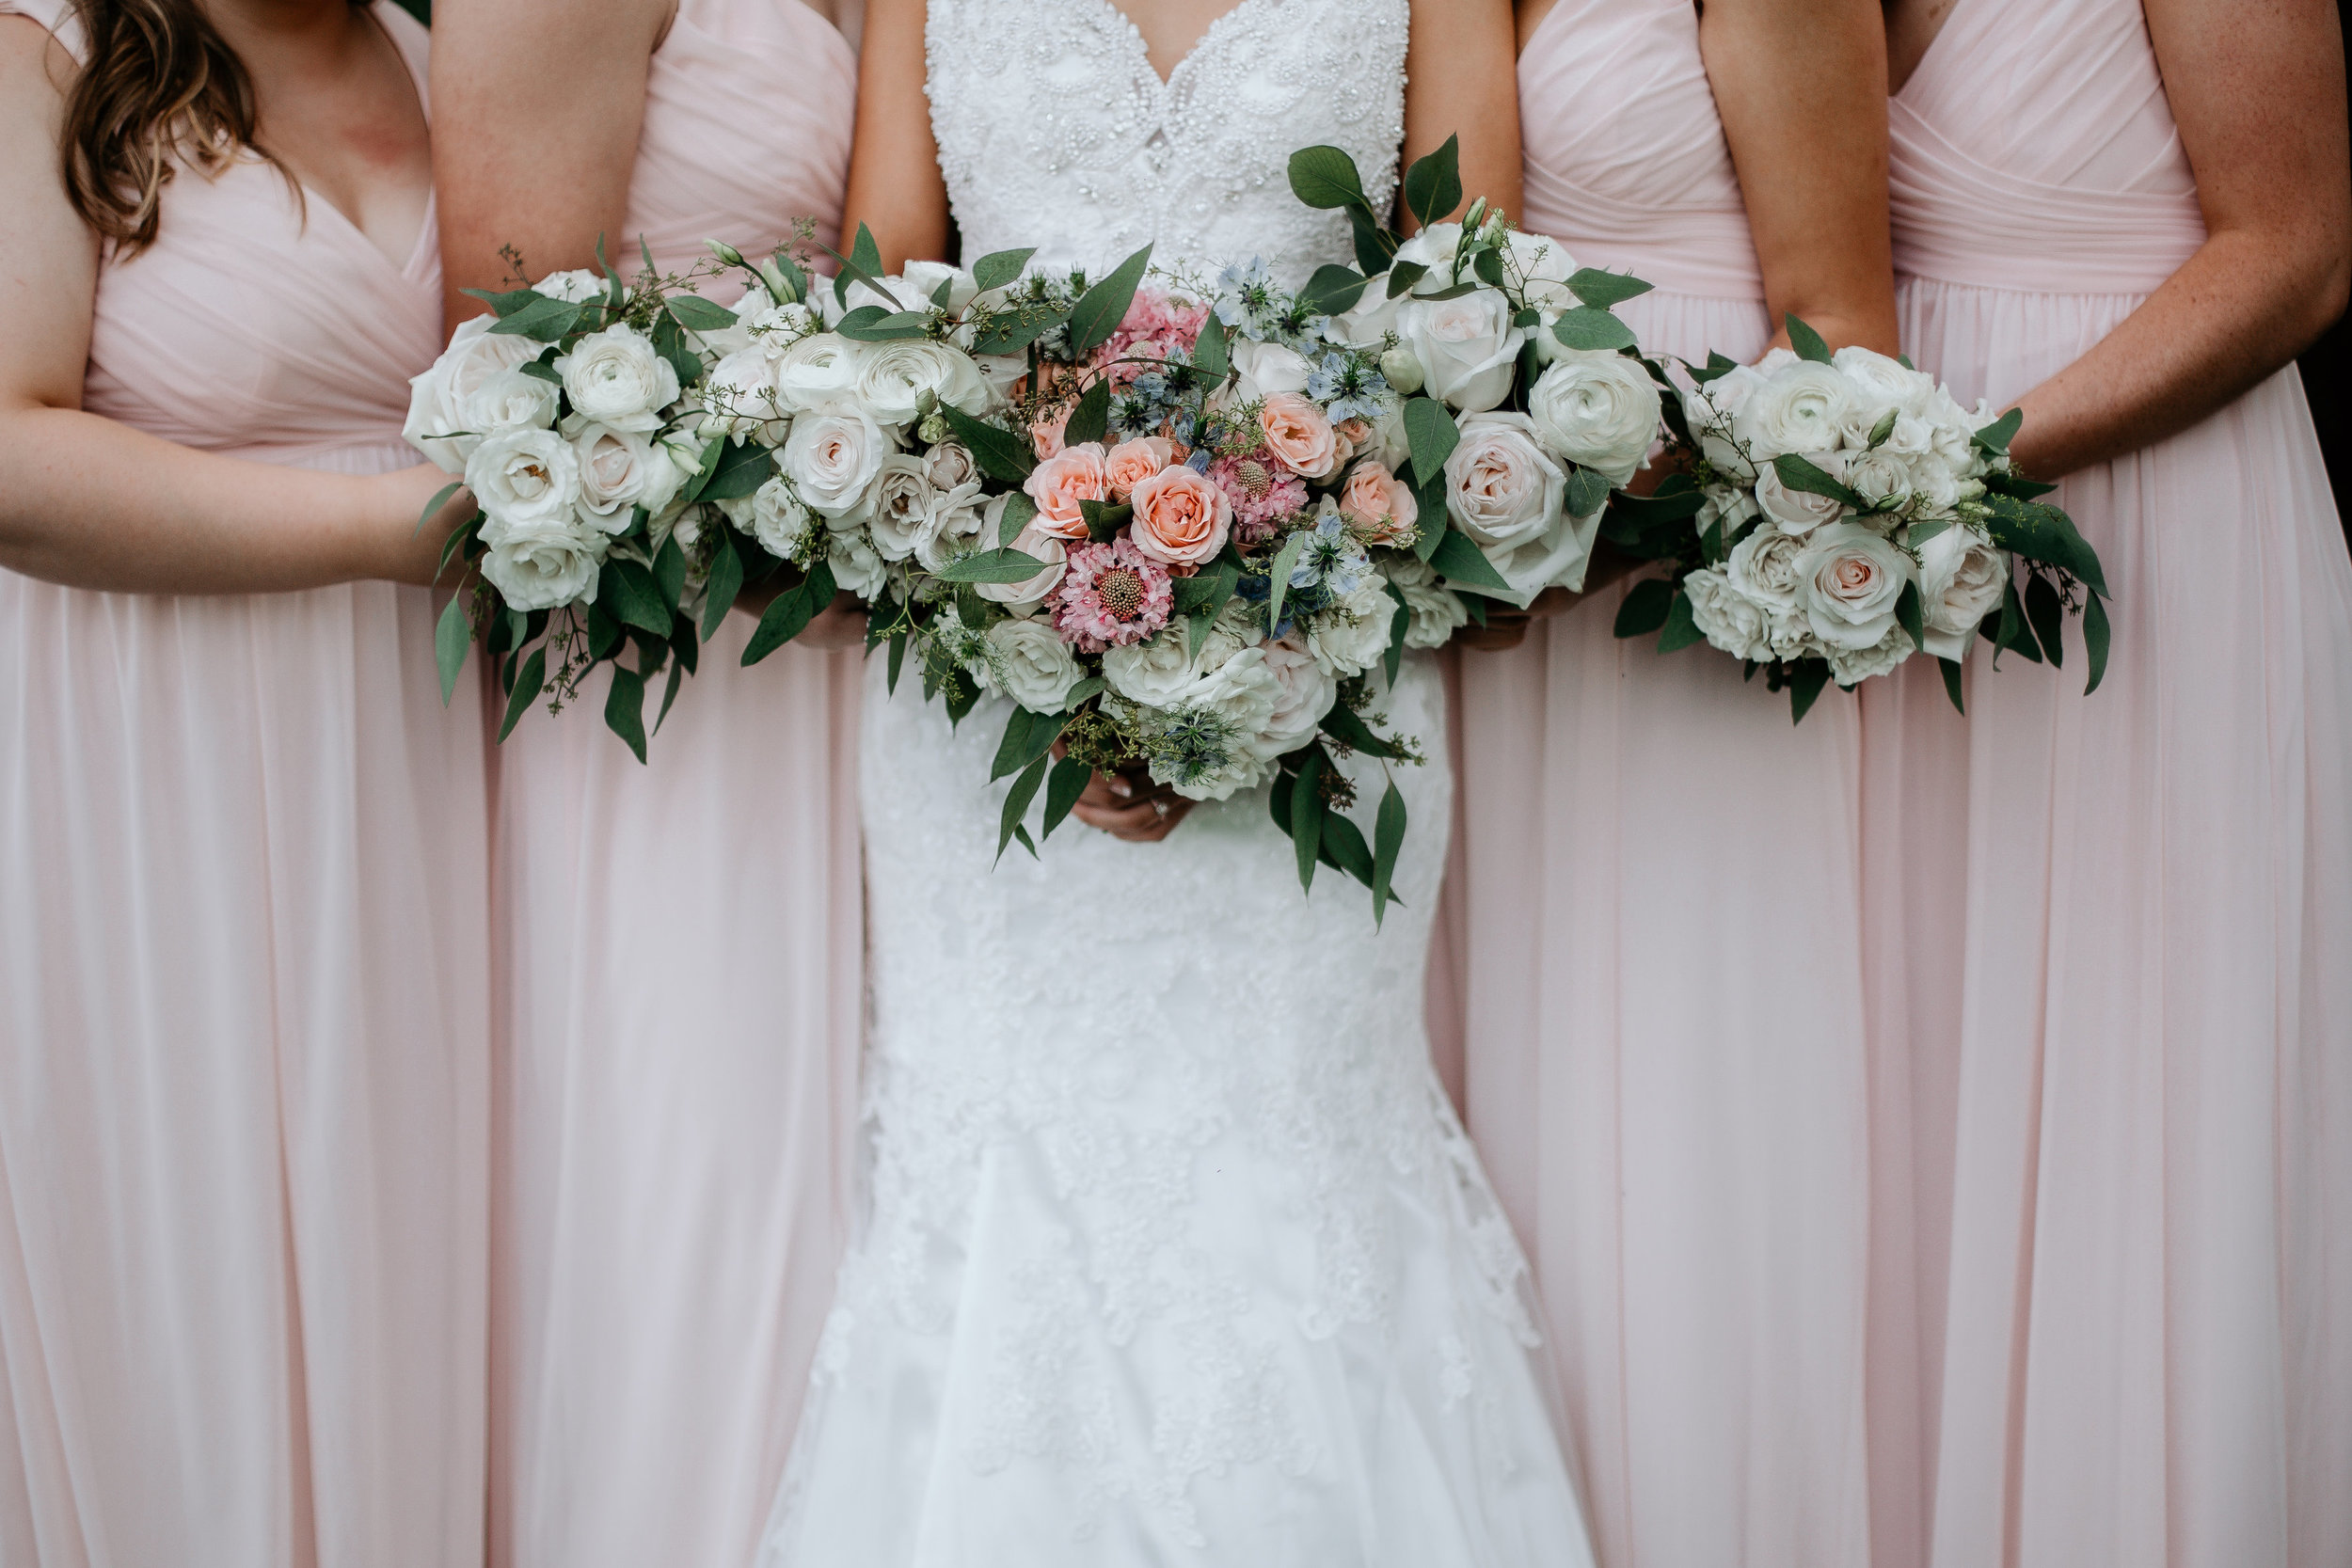 Juliet garden roses, white standard mums, spray roses and dusty miller. Credit: Tiffany Morse Photography